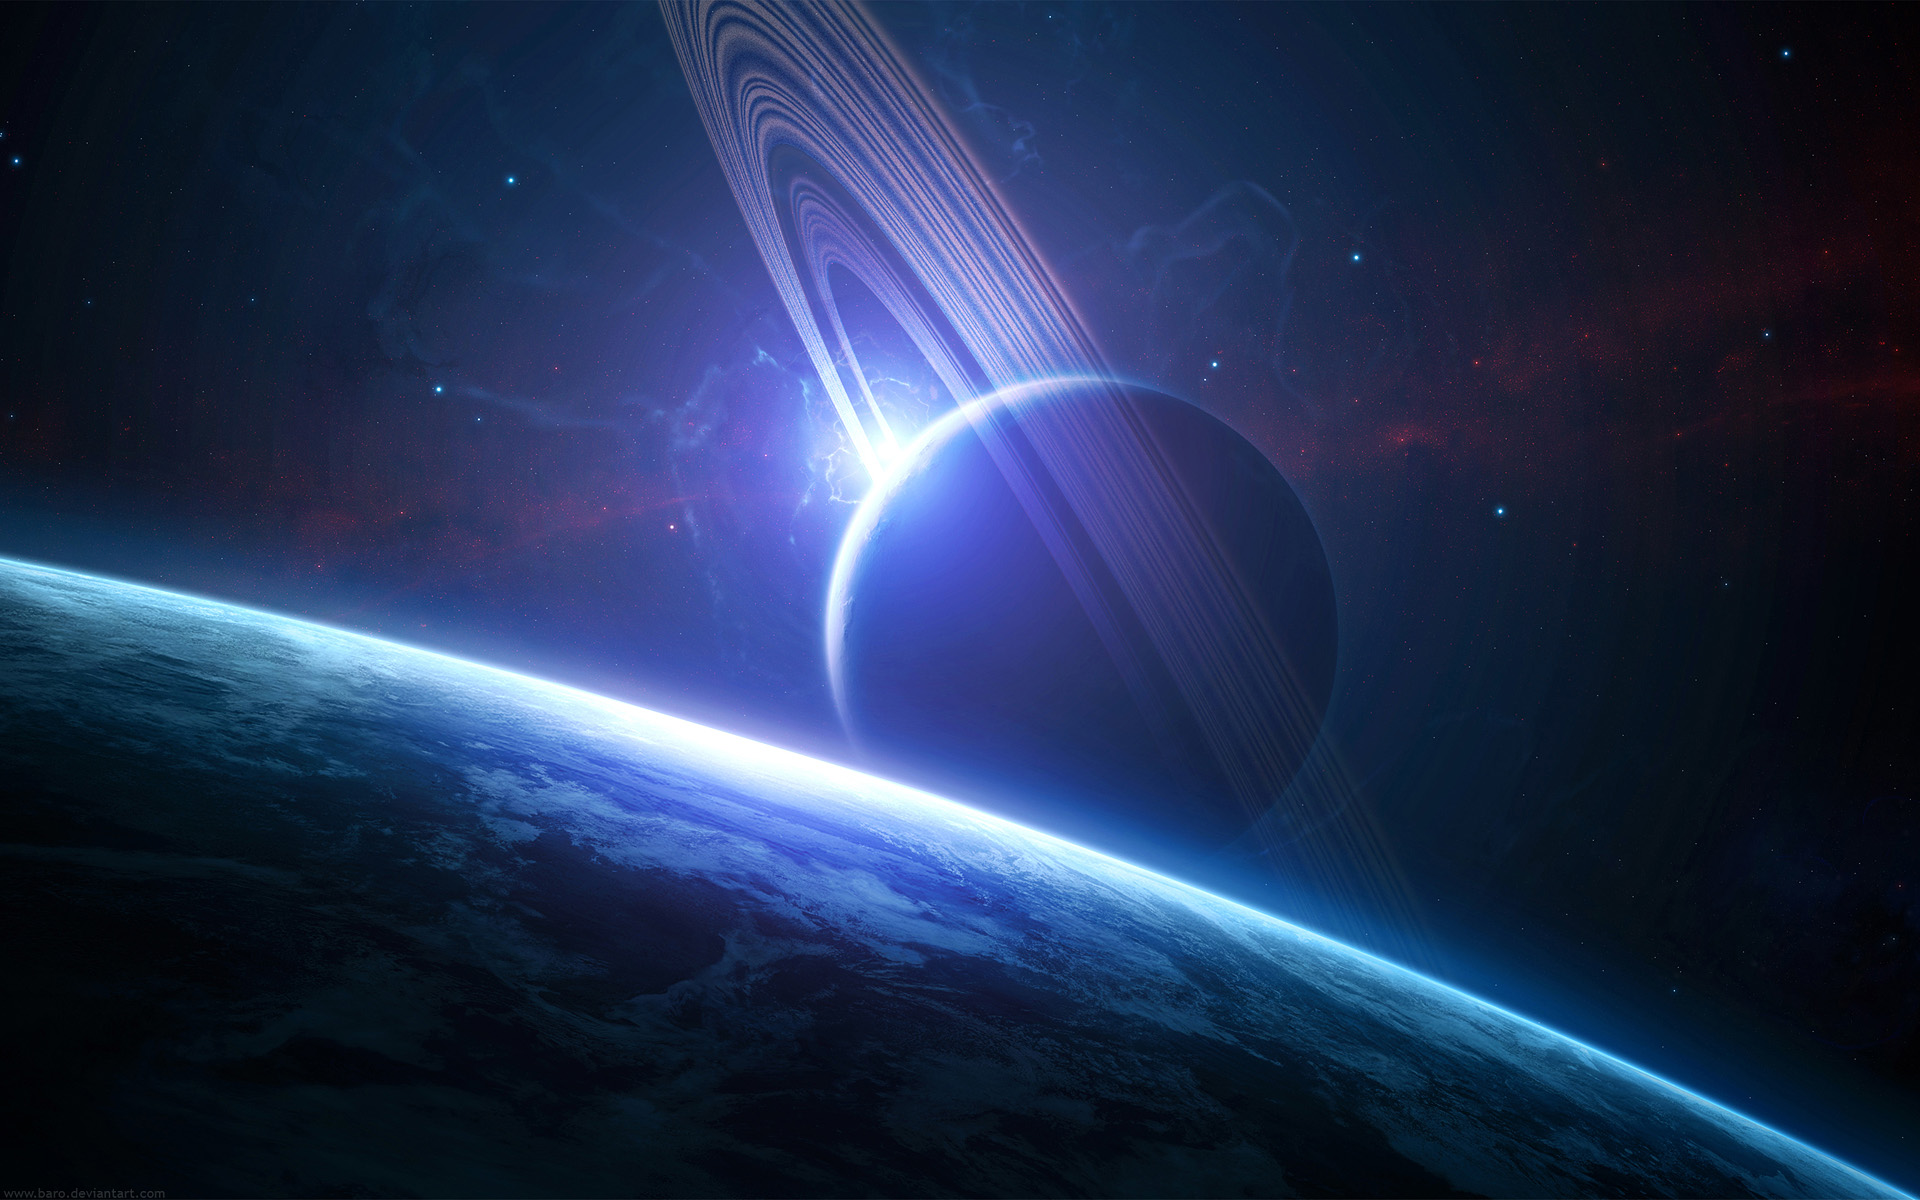 Space Planet HD Desktop Wall Papers 2 1920x1200